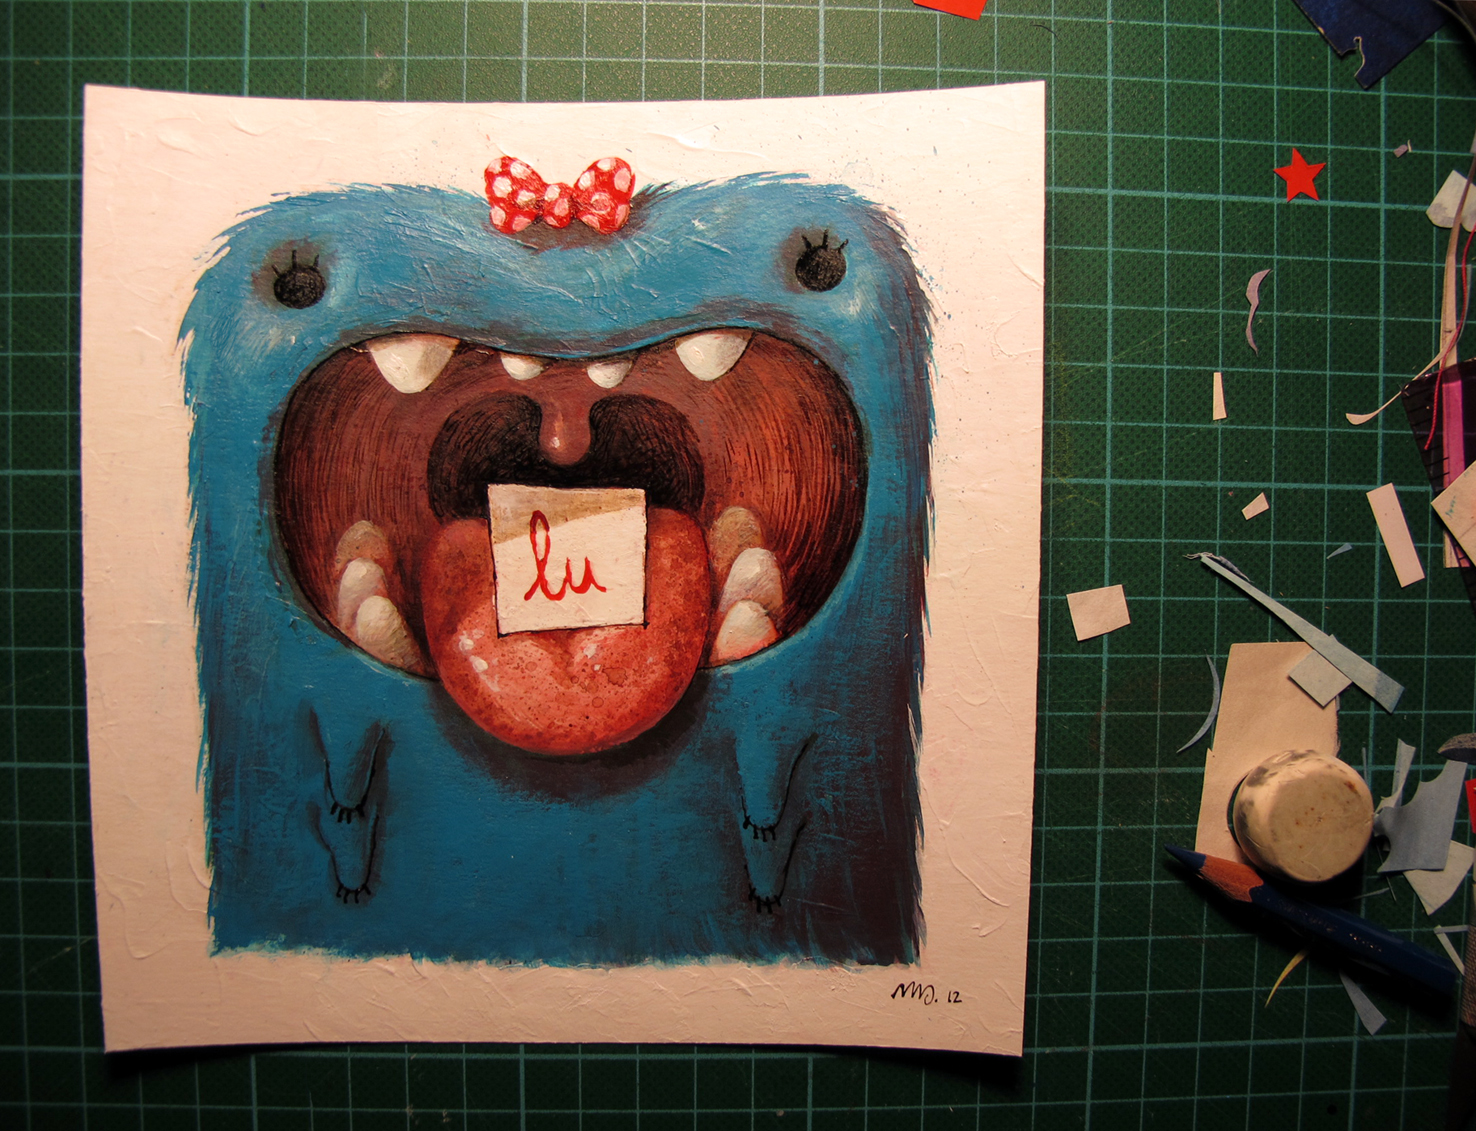 Illustration for a friend's kid that became my 2013 New year card. Acrylic on paper. 2012.